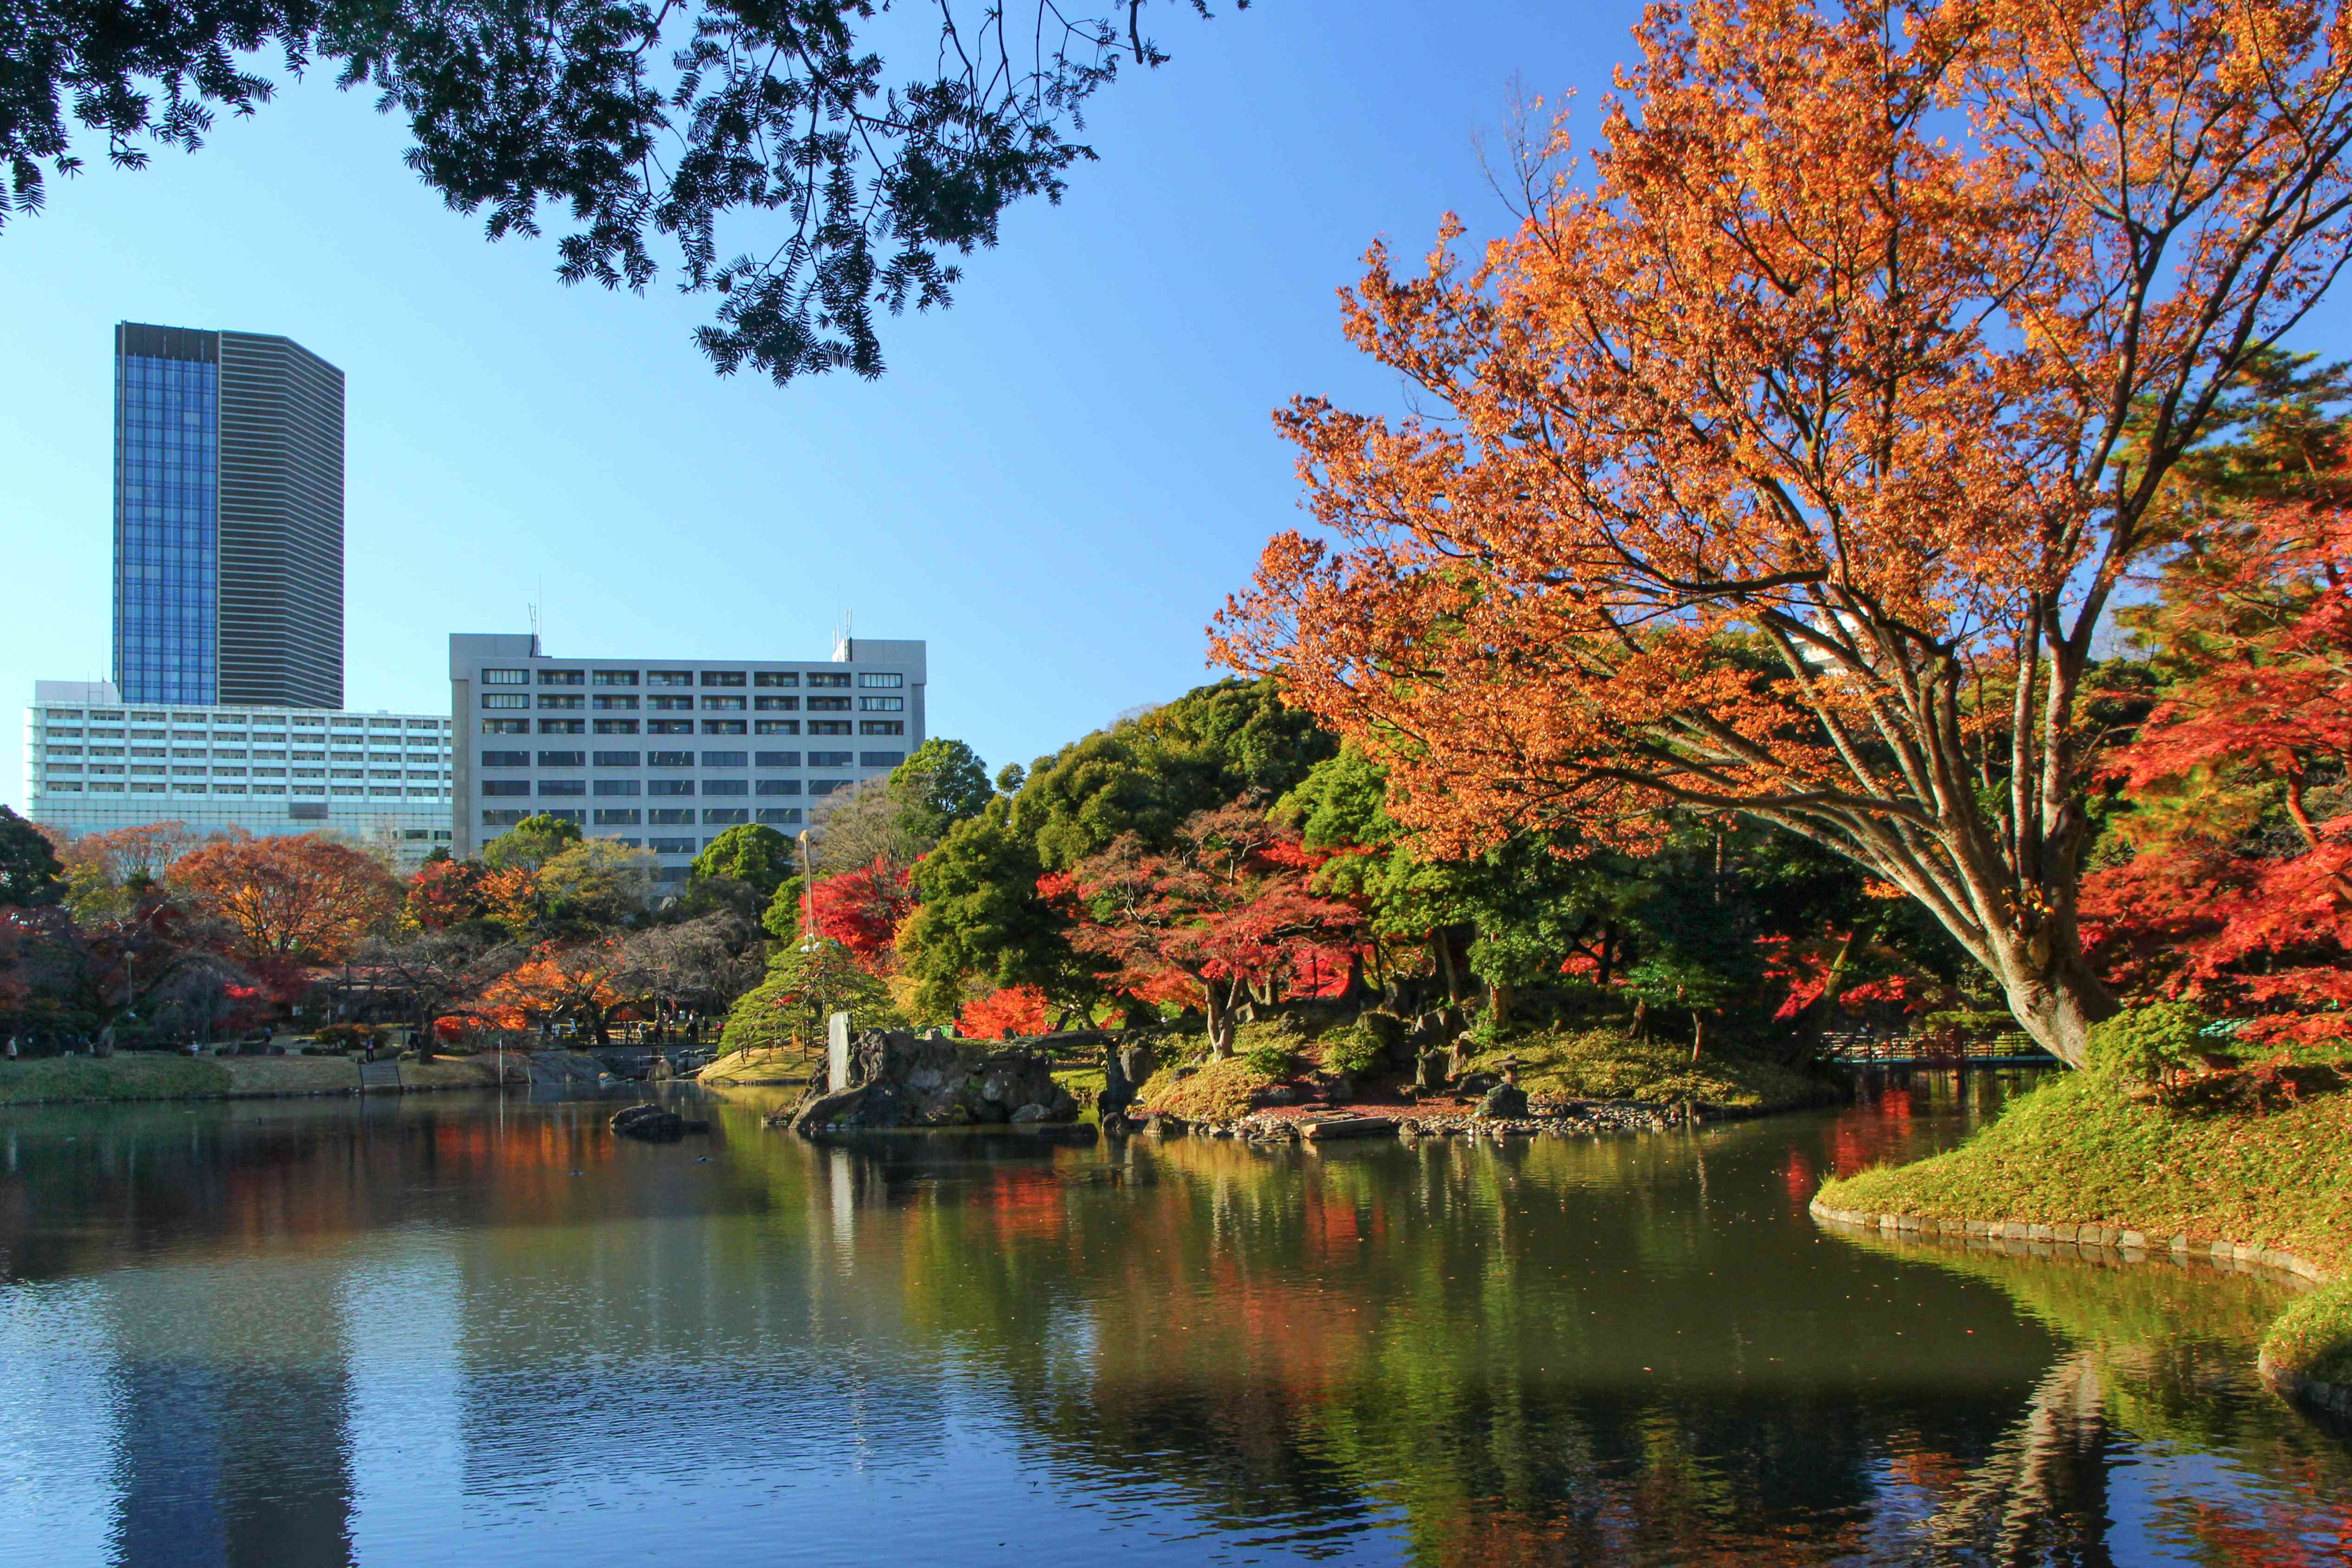 idyllic shot of fall leaves and landscape park and lake with city buildings in background